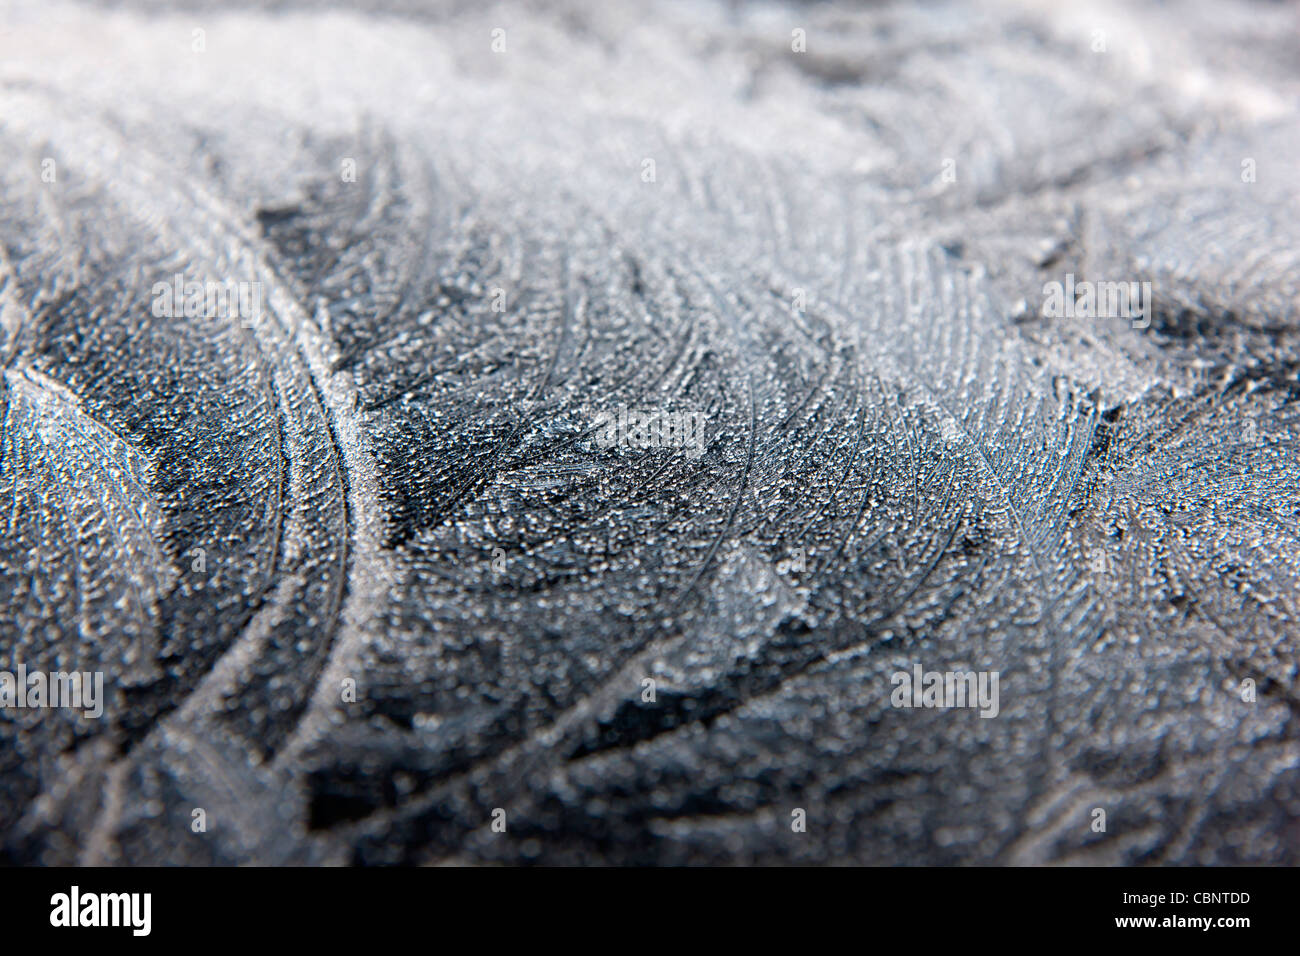 occurring crystalline inorganic solid Ice crystals Frost on a window pane frozen water transparent opaque - Stock Image